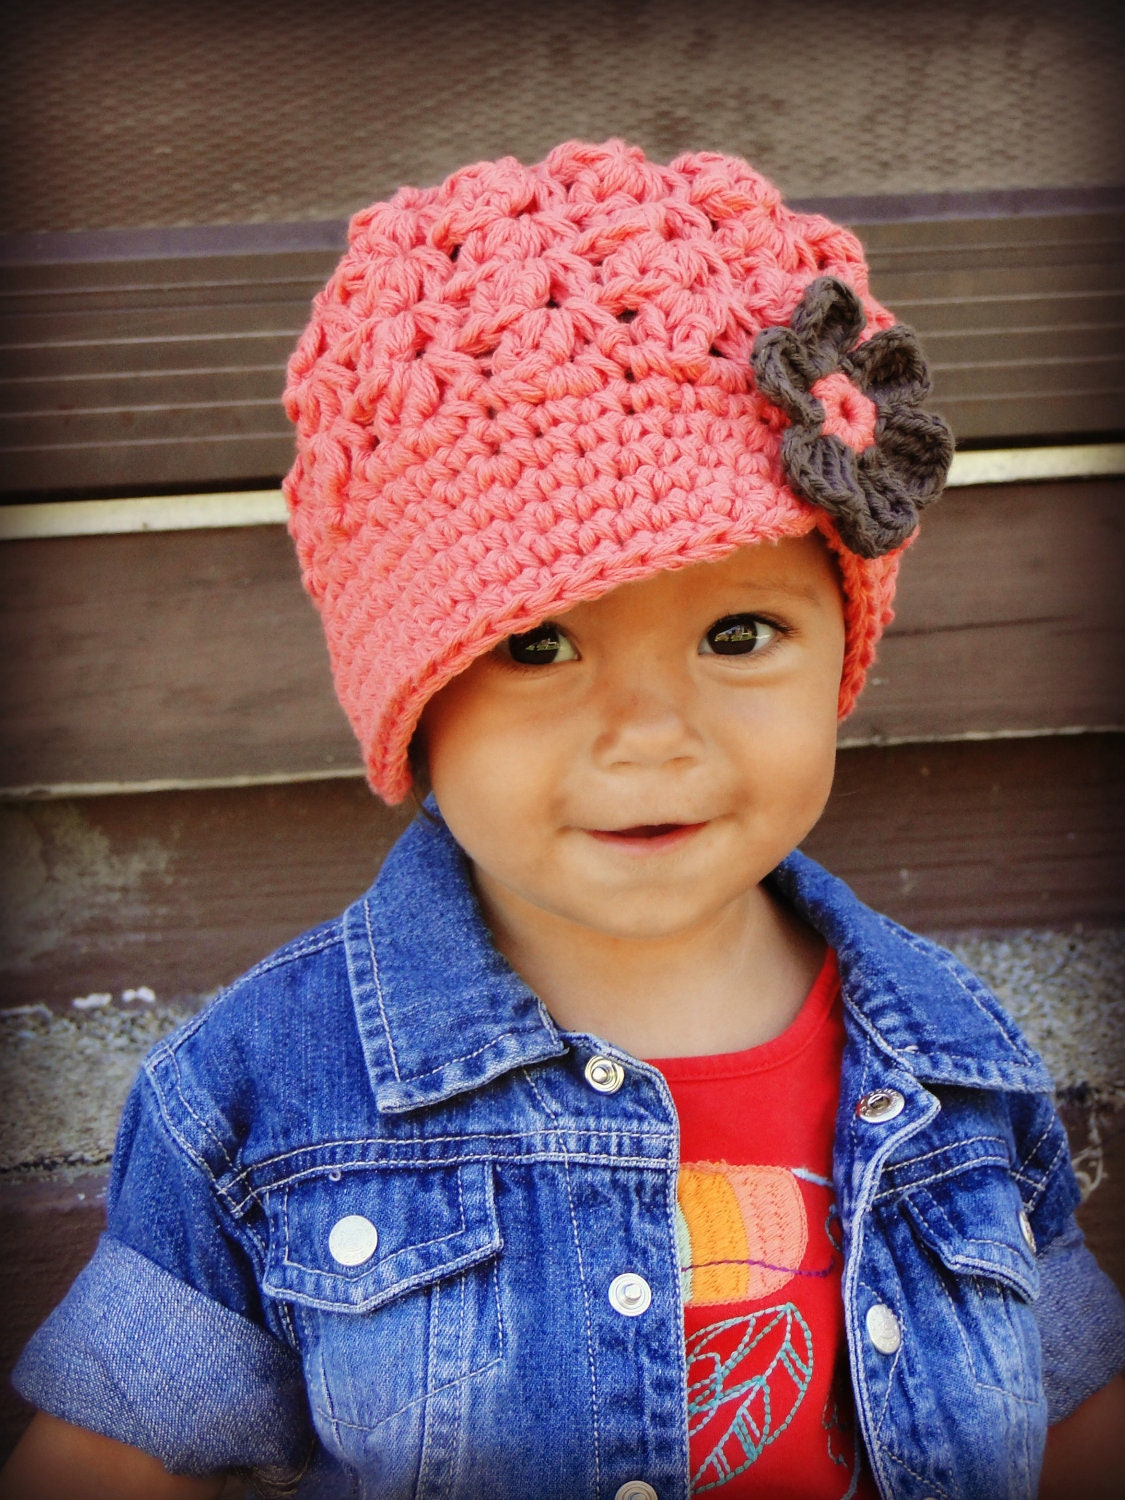 Crochet Baby Hat kids hat crochet newsboy hat hat for